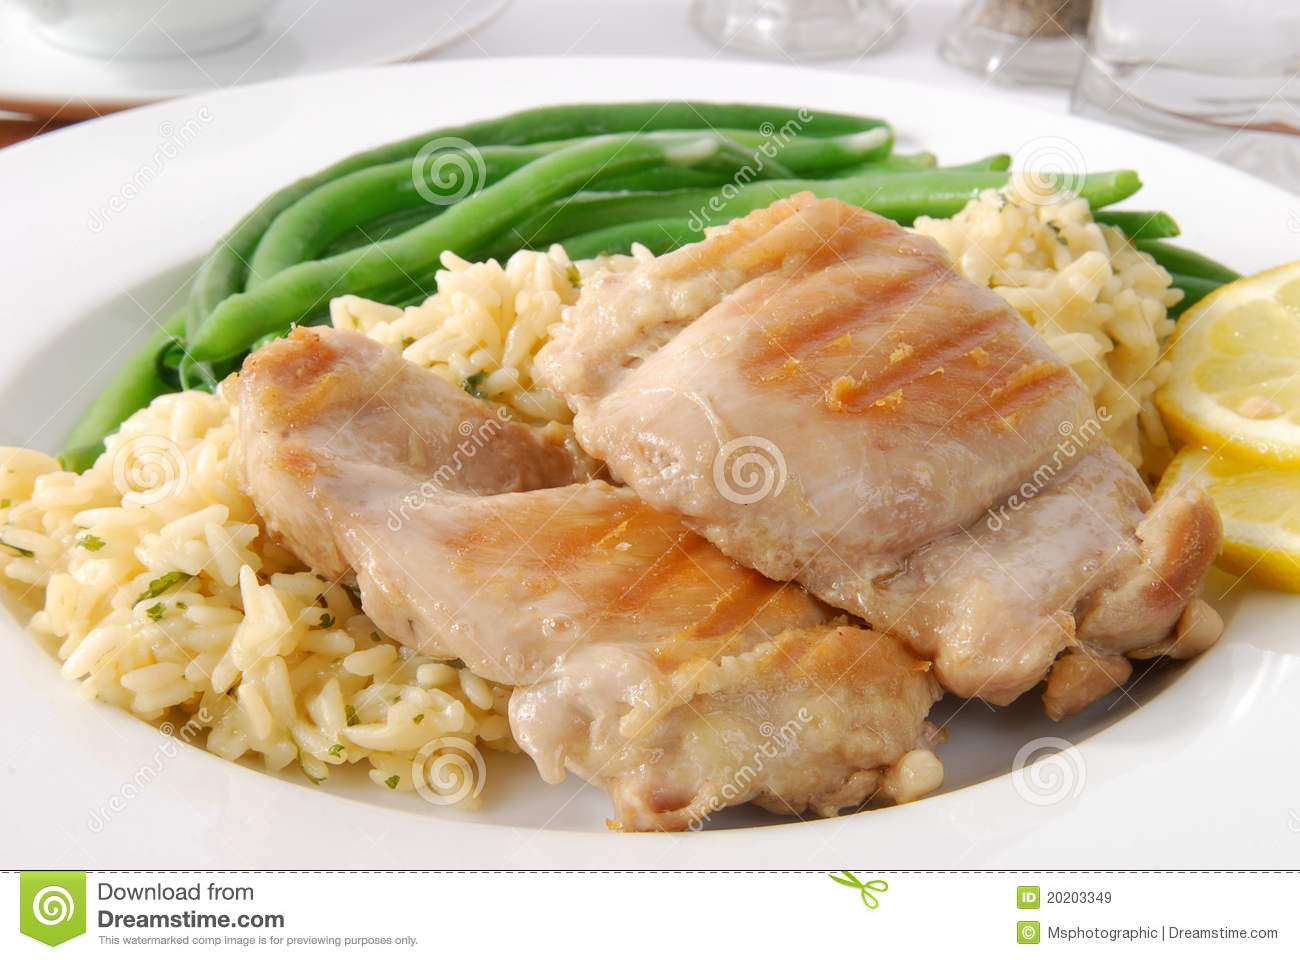 Fancy chicken meal - photo#24